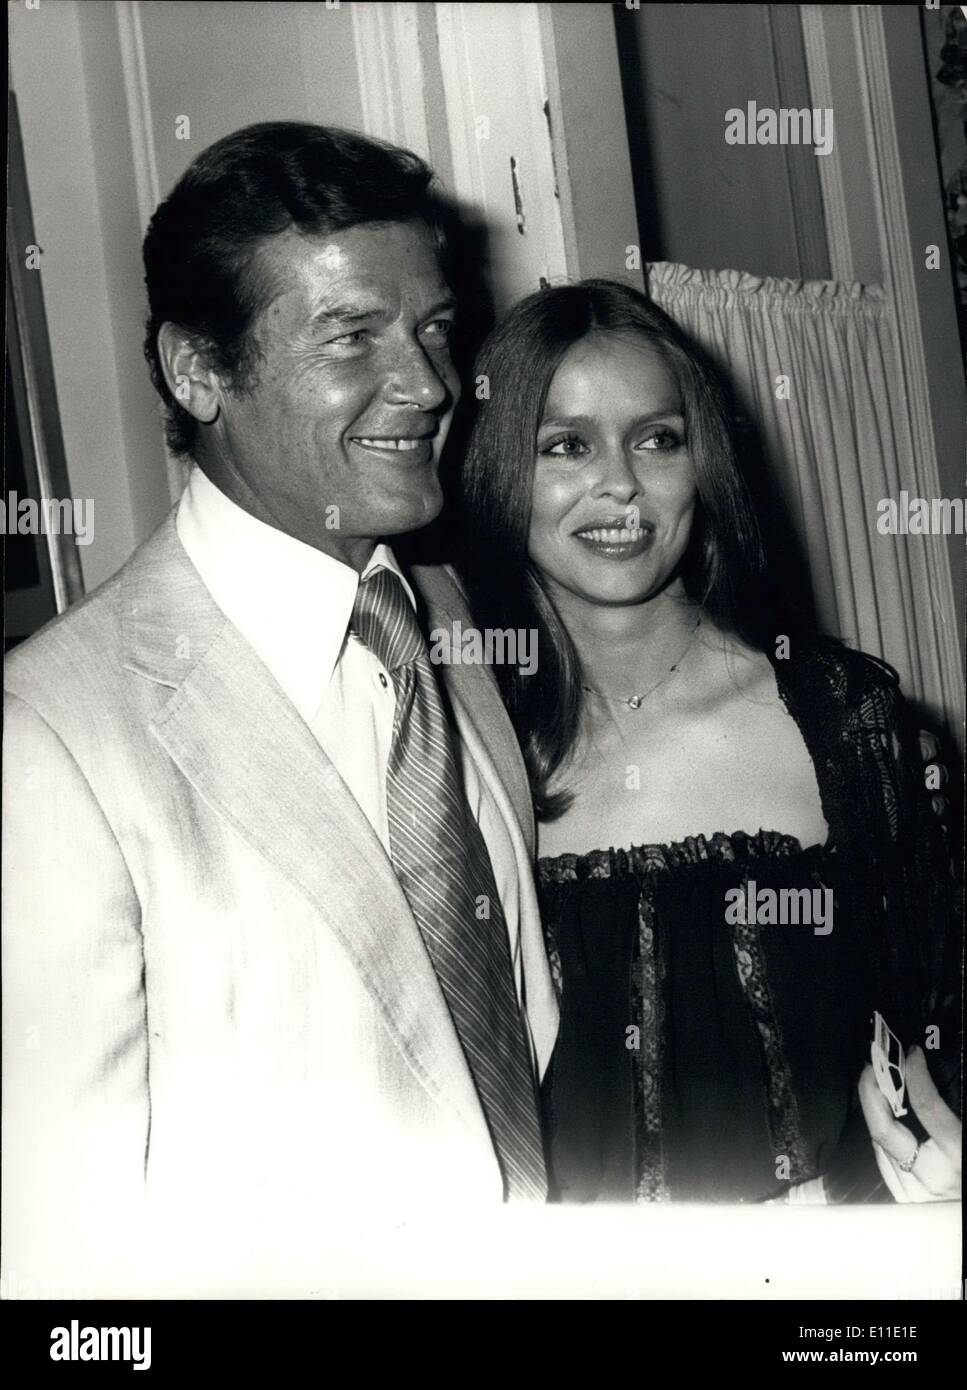 May 23, 1977 - Accompanied by his main partner, Barbara Bach, Roger Moore, whose alias is James Bond 007, came to Cannes where his latest movie ''The Spy Who Loved Me'' will be exclusively within the scope of the International Film Festival. Picture: - Stock Image